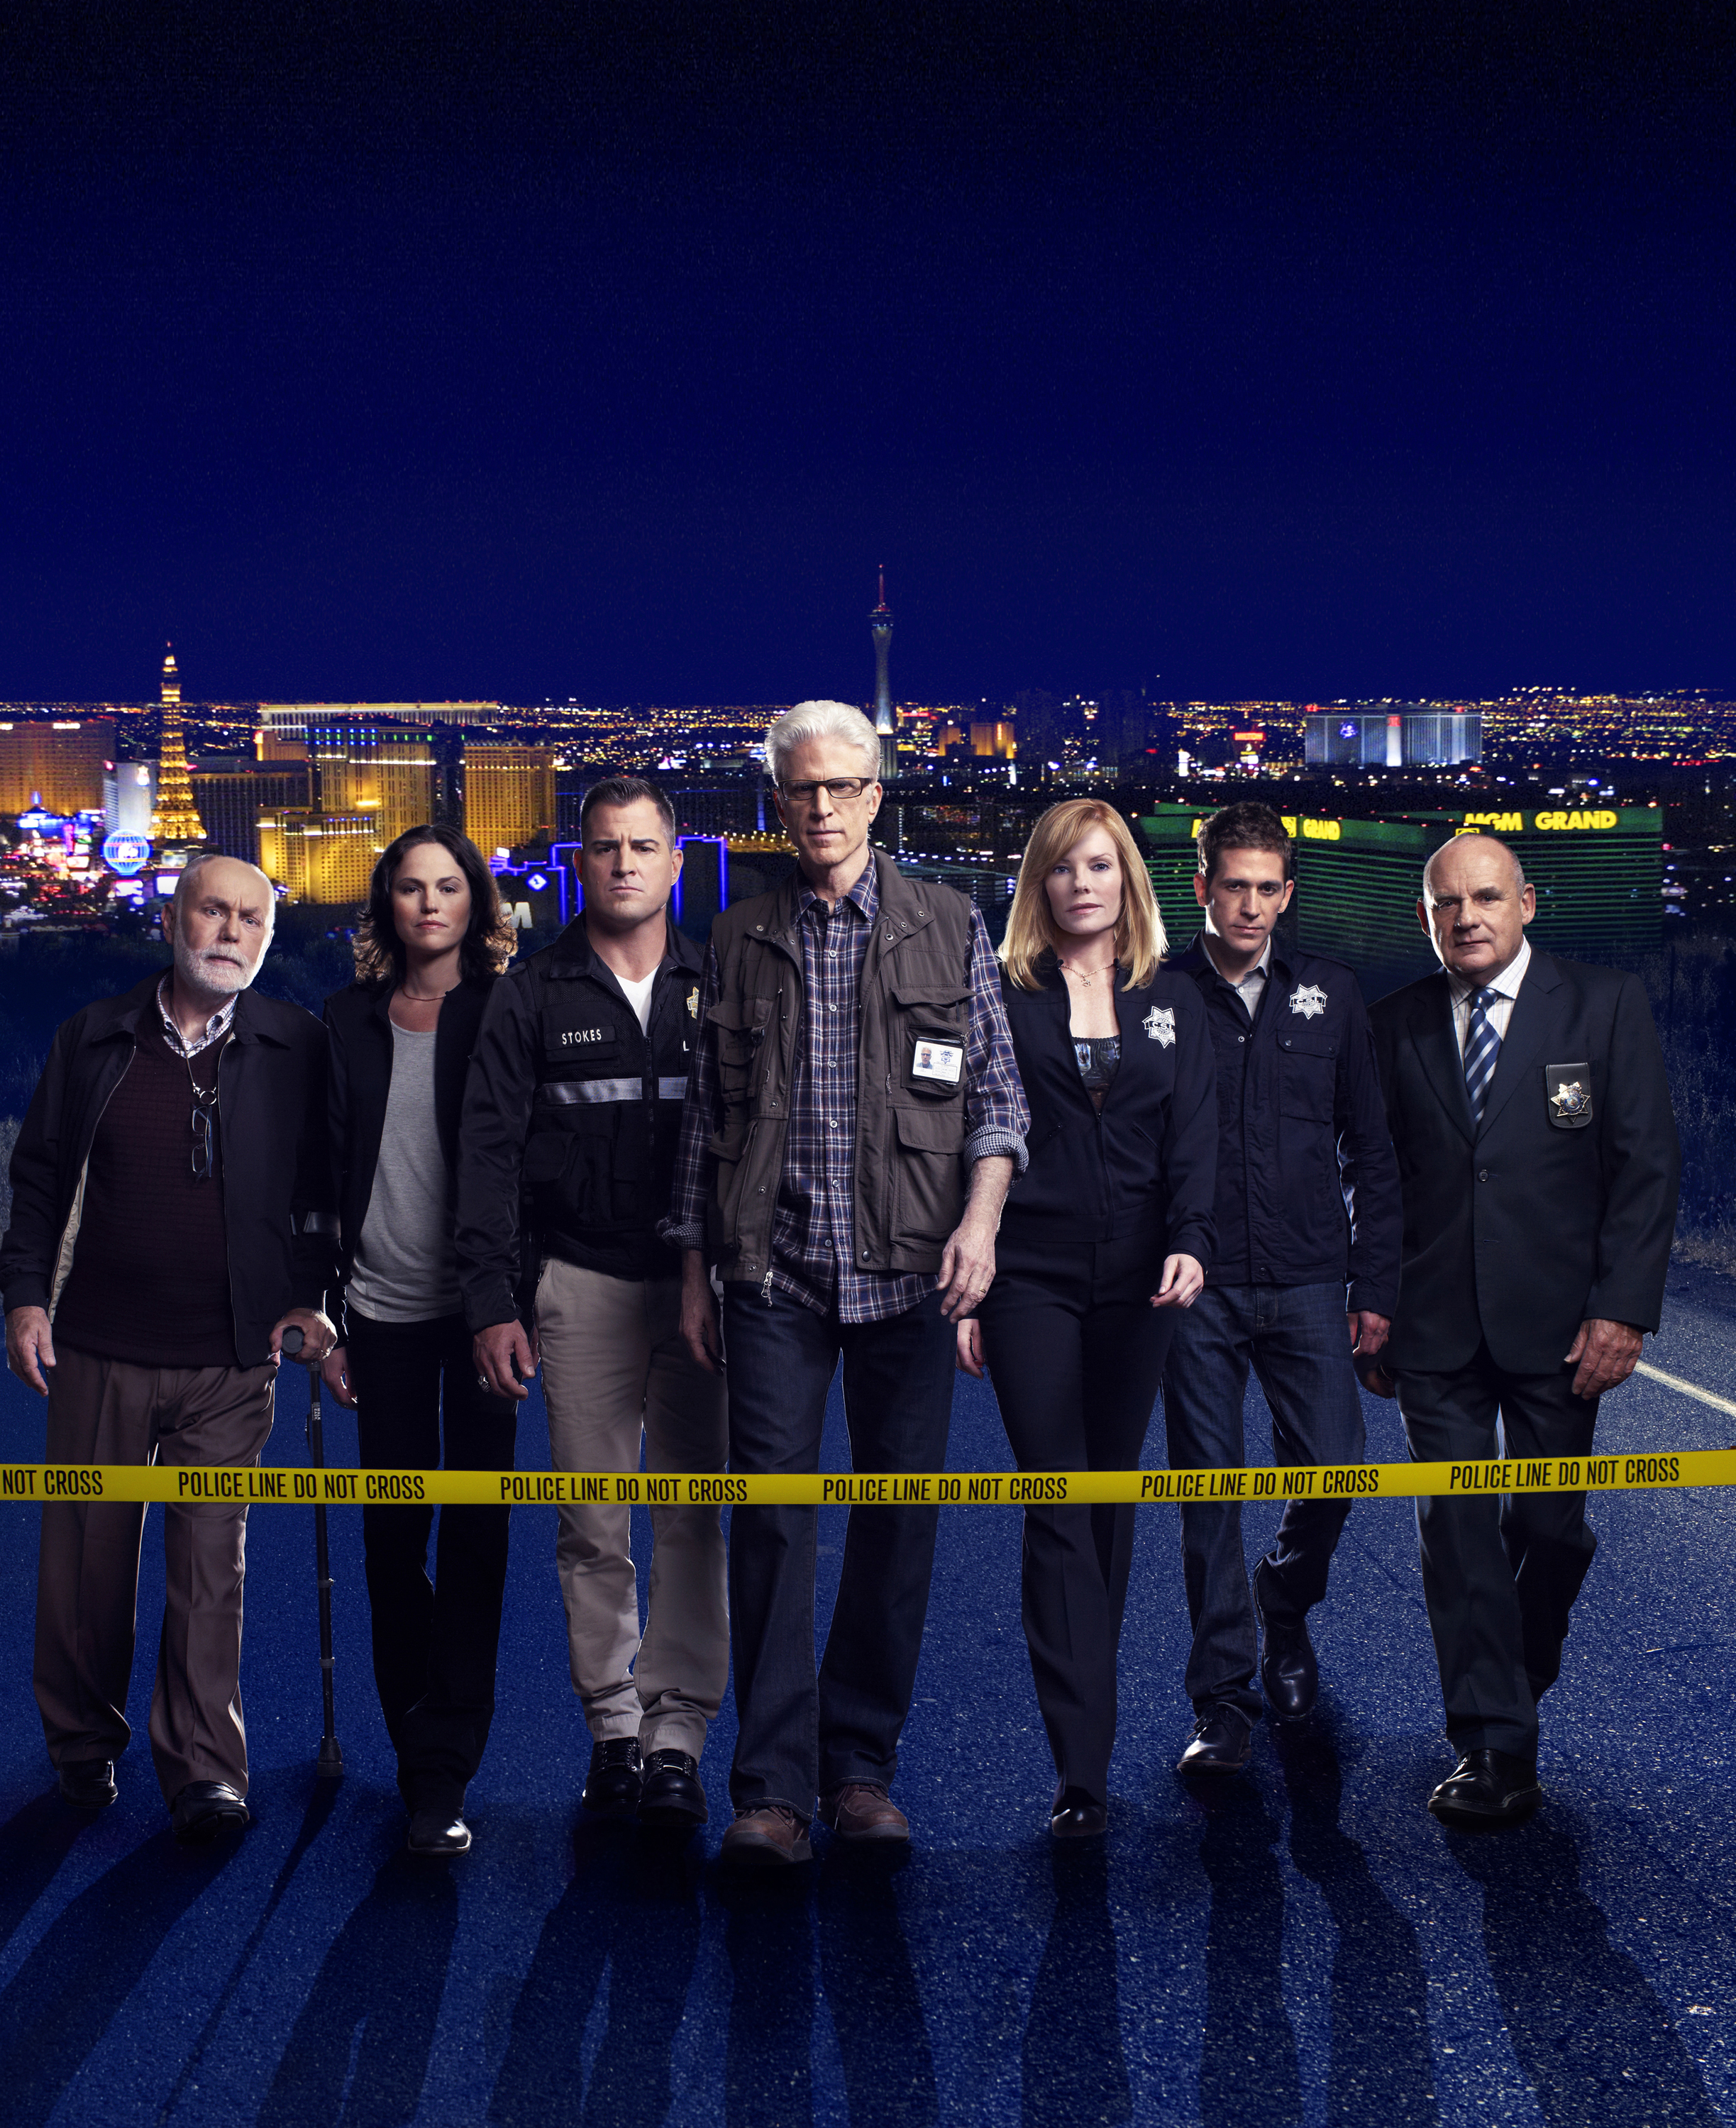 Image name csi shue1401i description gallery coverage for csi crime